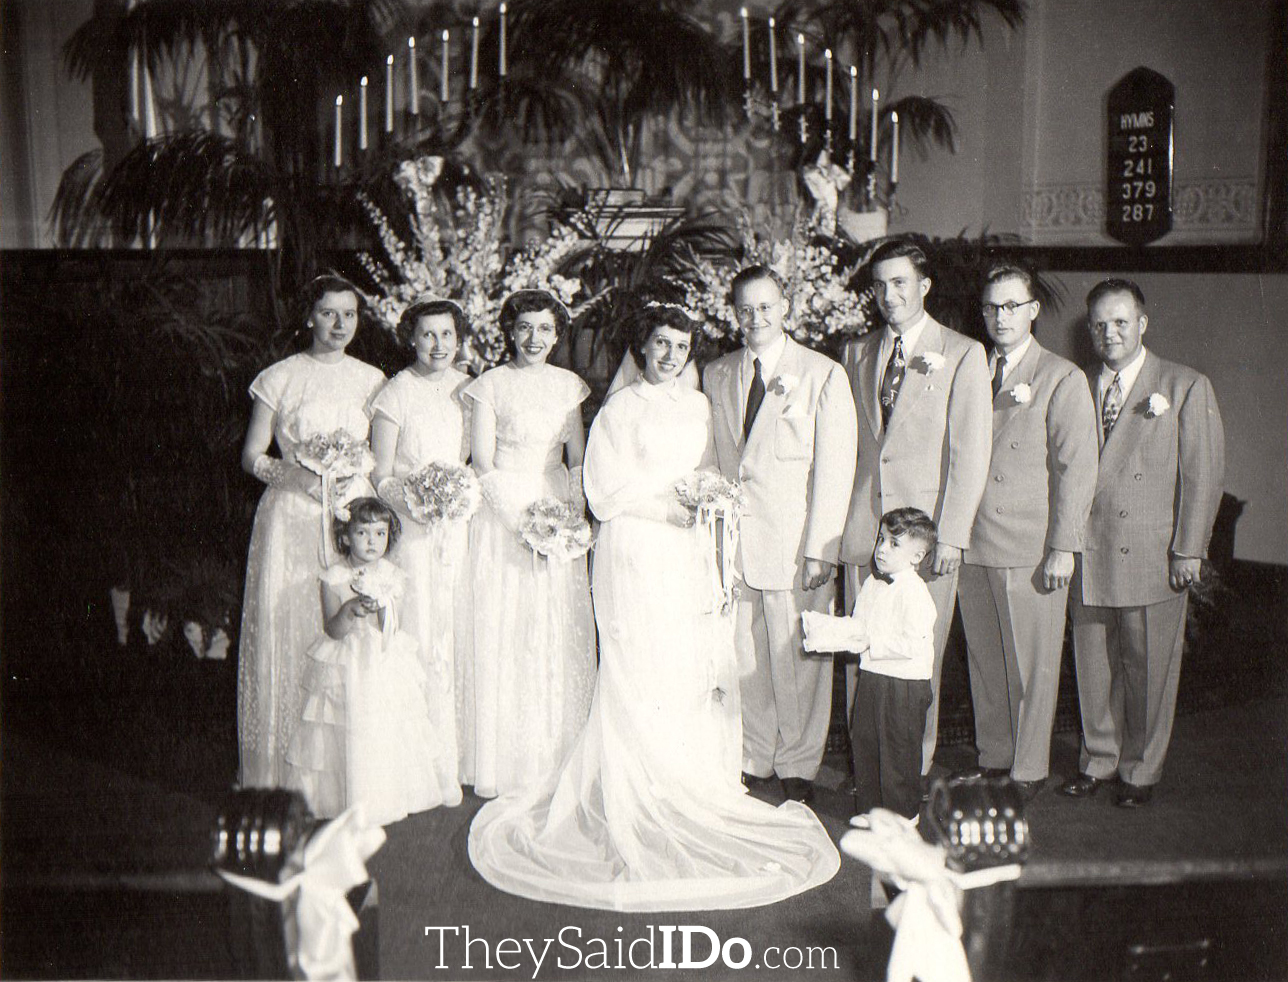 Byron, June and their entire wedding party. Sister June is the matron of honor.  Lansing, MI 1951 {TheySaidIDo.com}